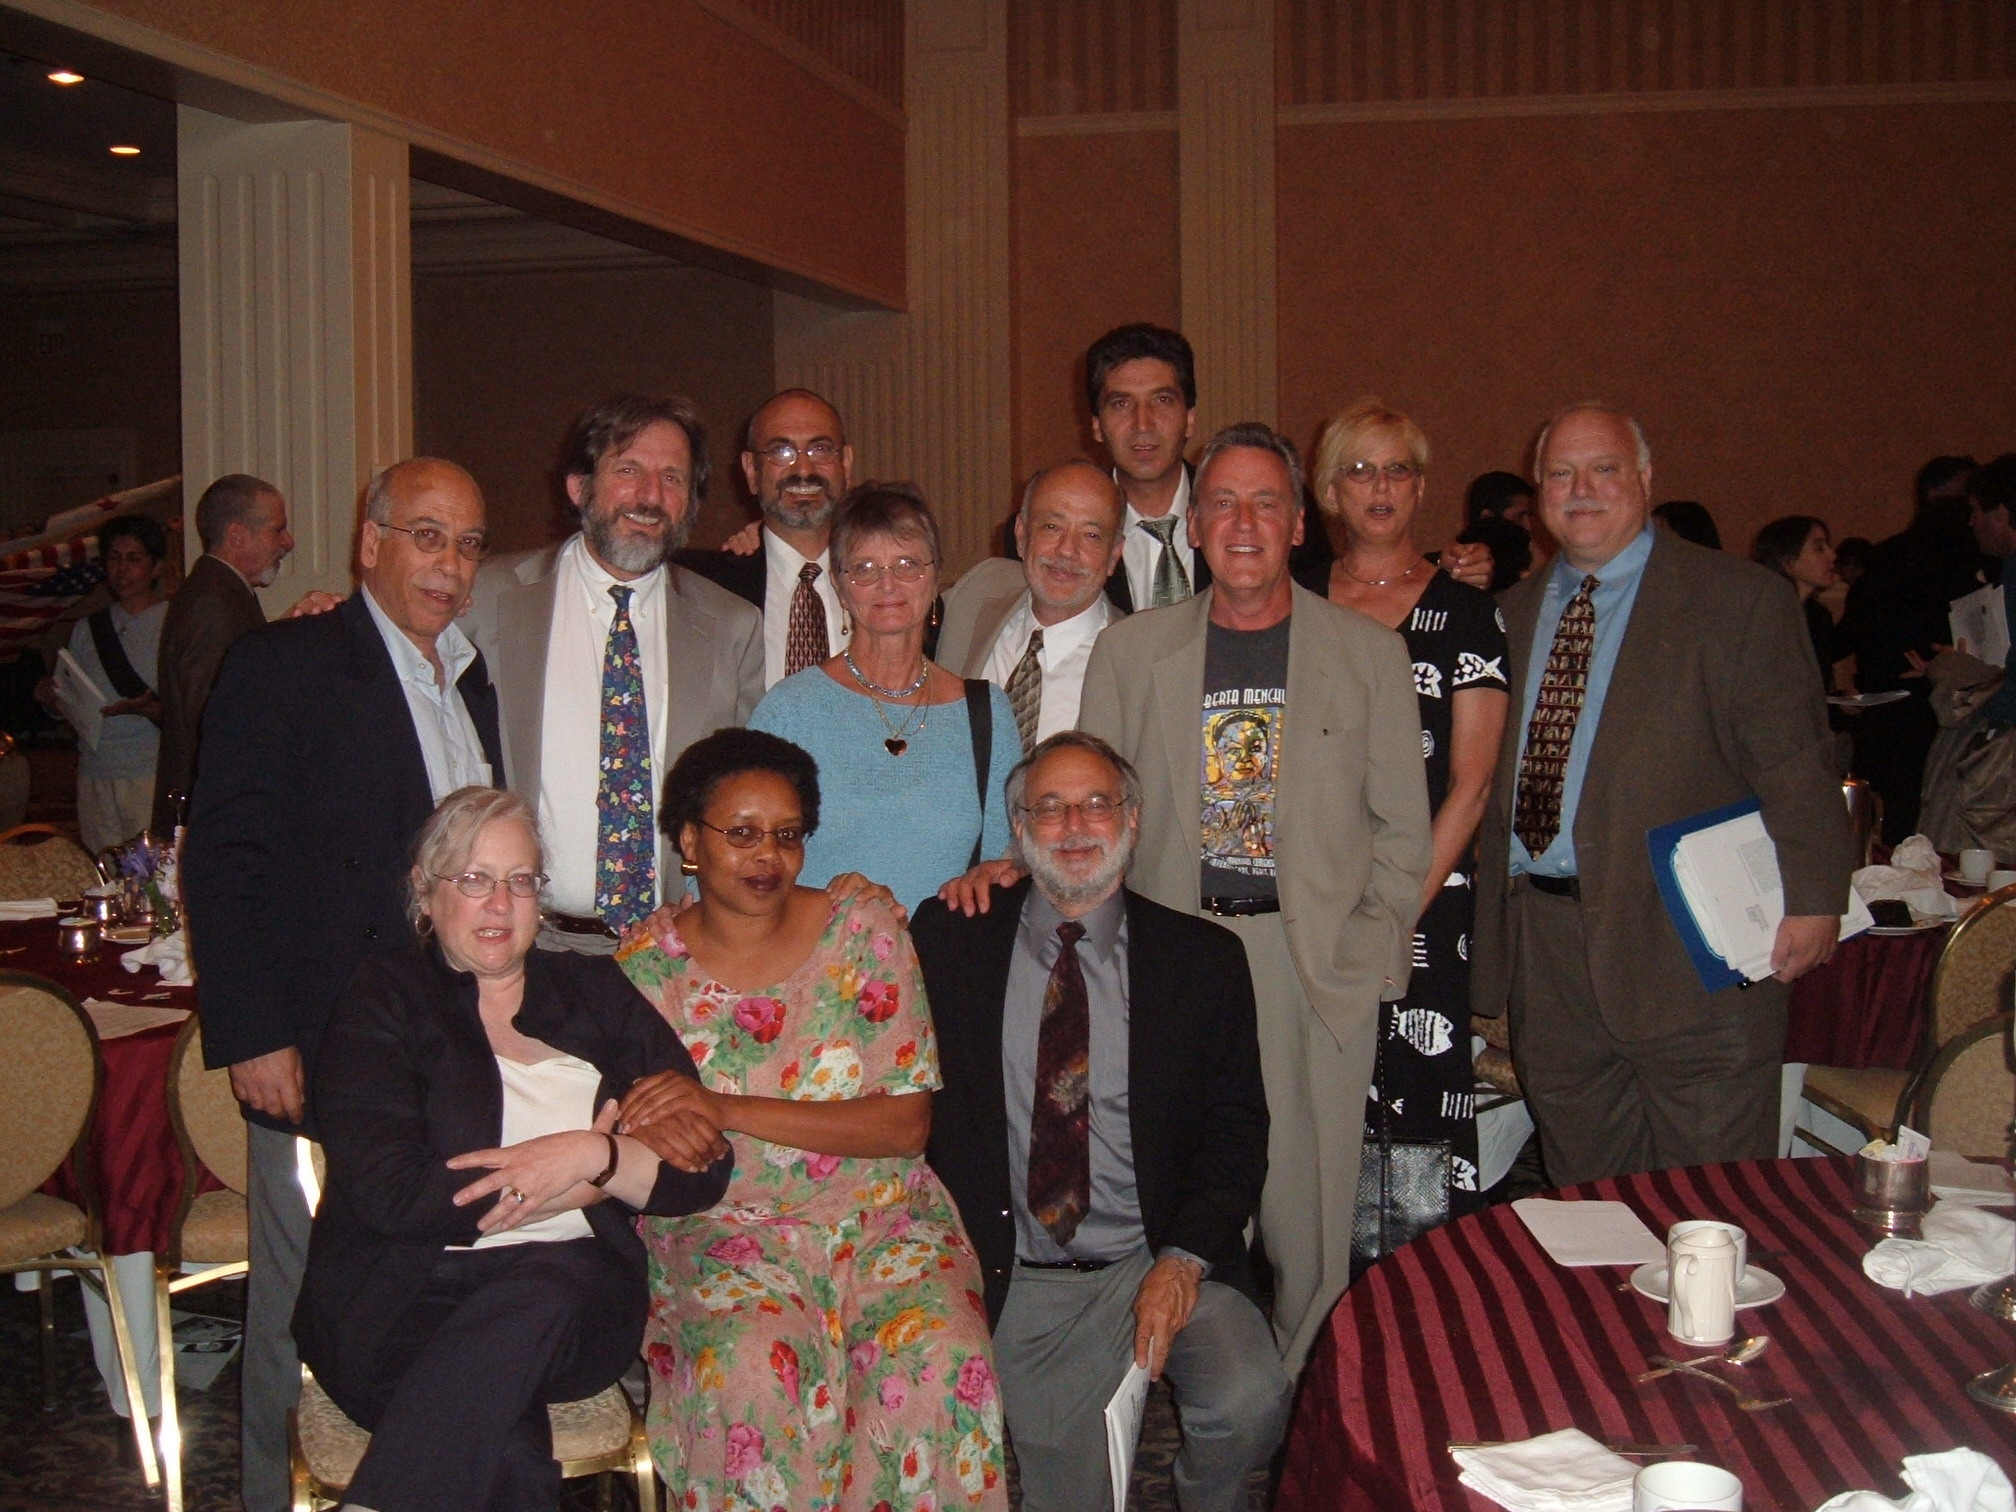 Some of the defendants with legal team in a NLG event